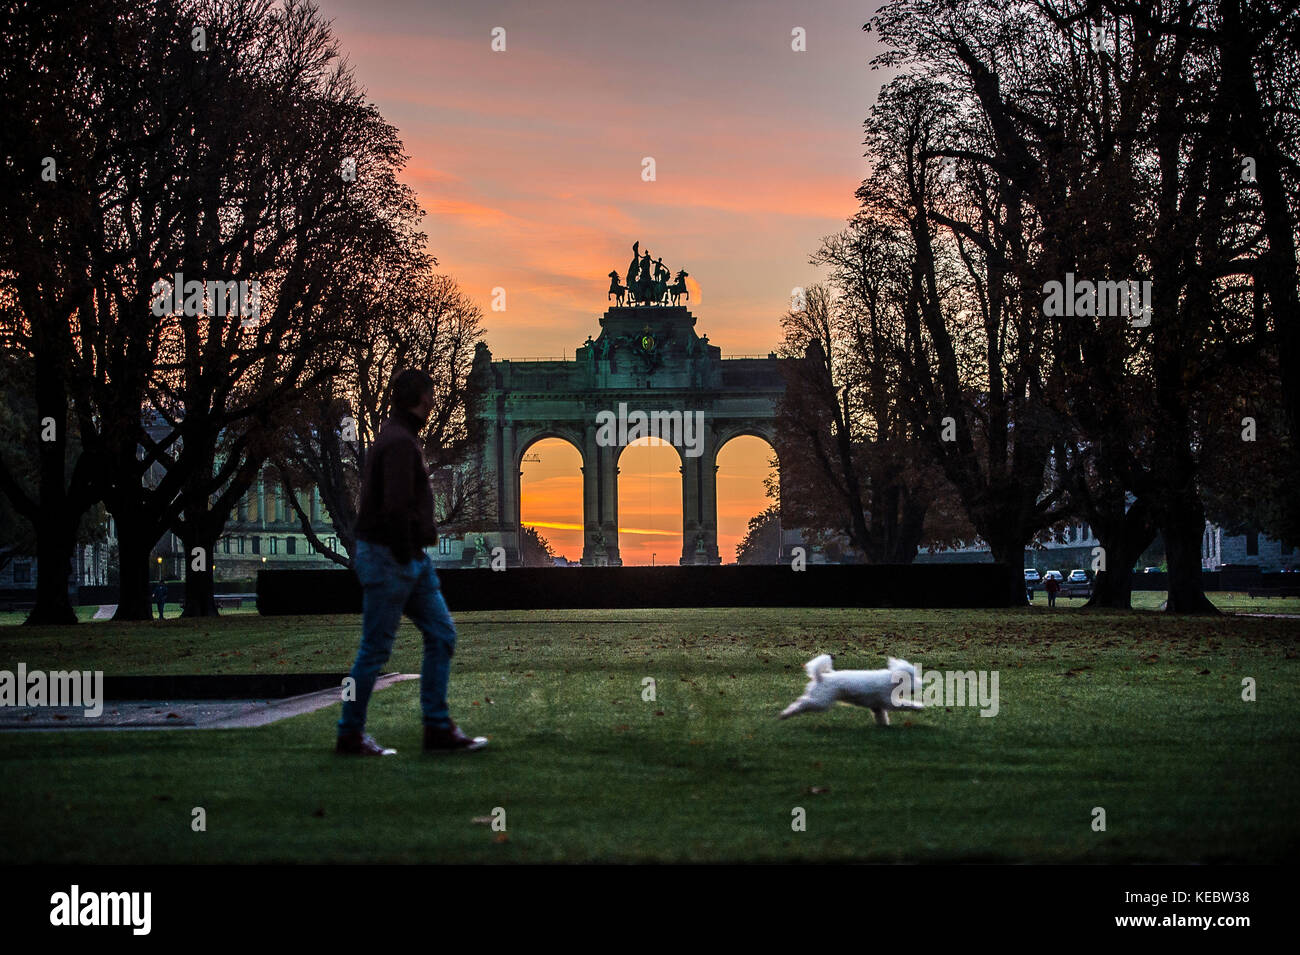 Brussels, Belgium. 19th Oct, 2017. Dawn in Parc du Cinquantenaire (French for 'Park of the Fiftieth Anniversary' - Stock Image